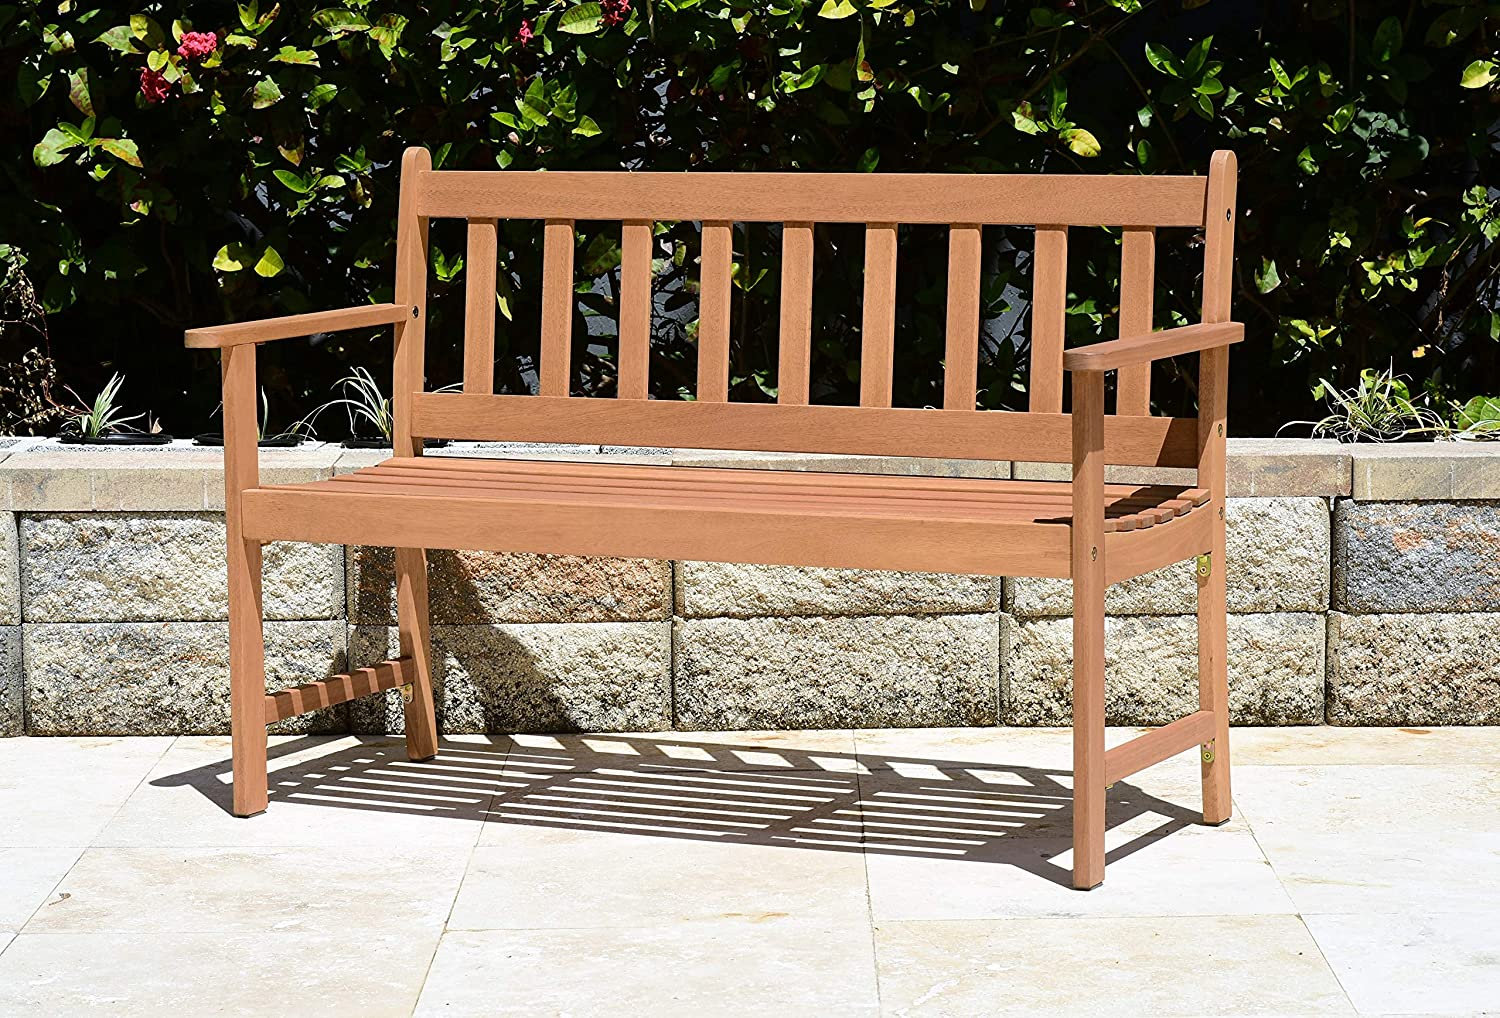 Brampton Omaha Outdoor Bench Teak Finish and 2-Seat Capacity Perfect for Patio and Backyards, Light Brown